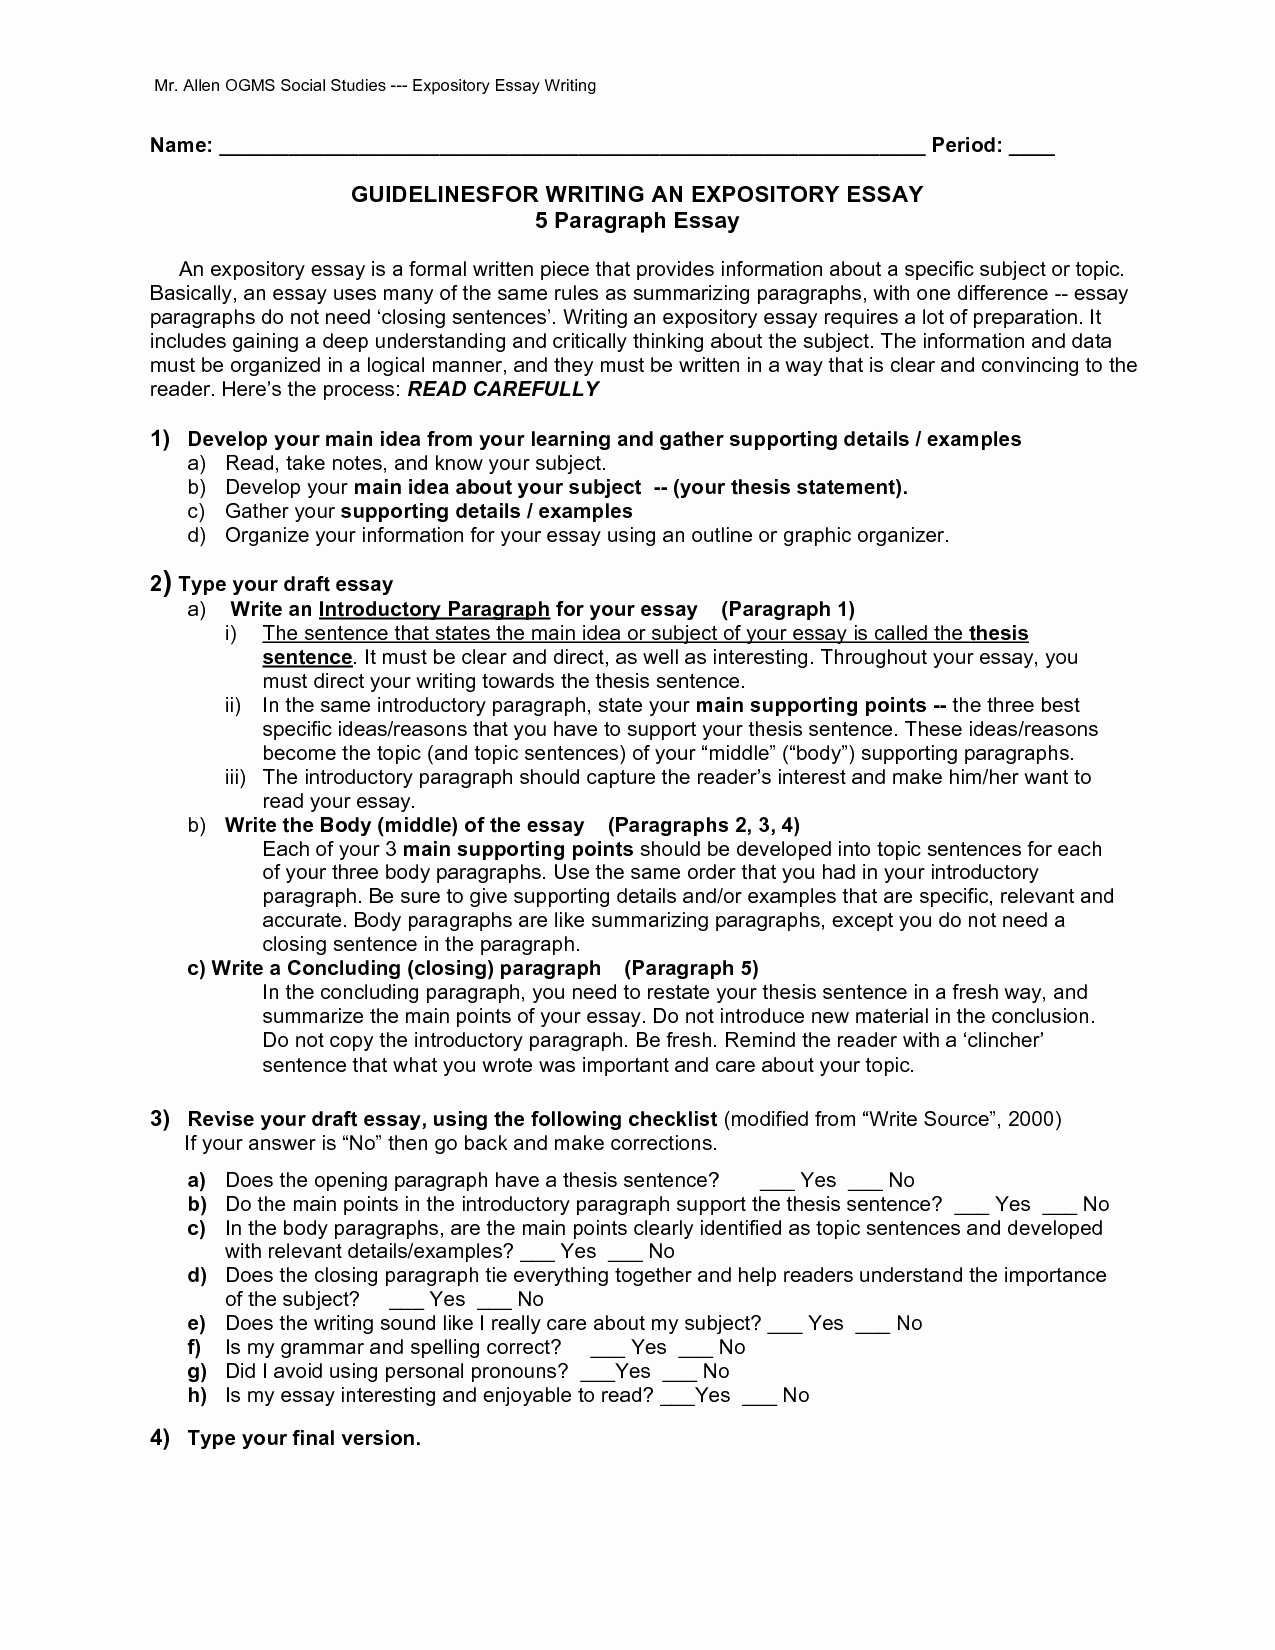 Examples Of Informative Writing Inspirational Full 5 Paragraph Essay On organic Foods